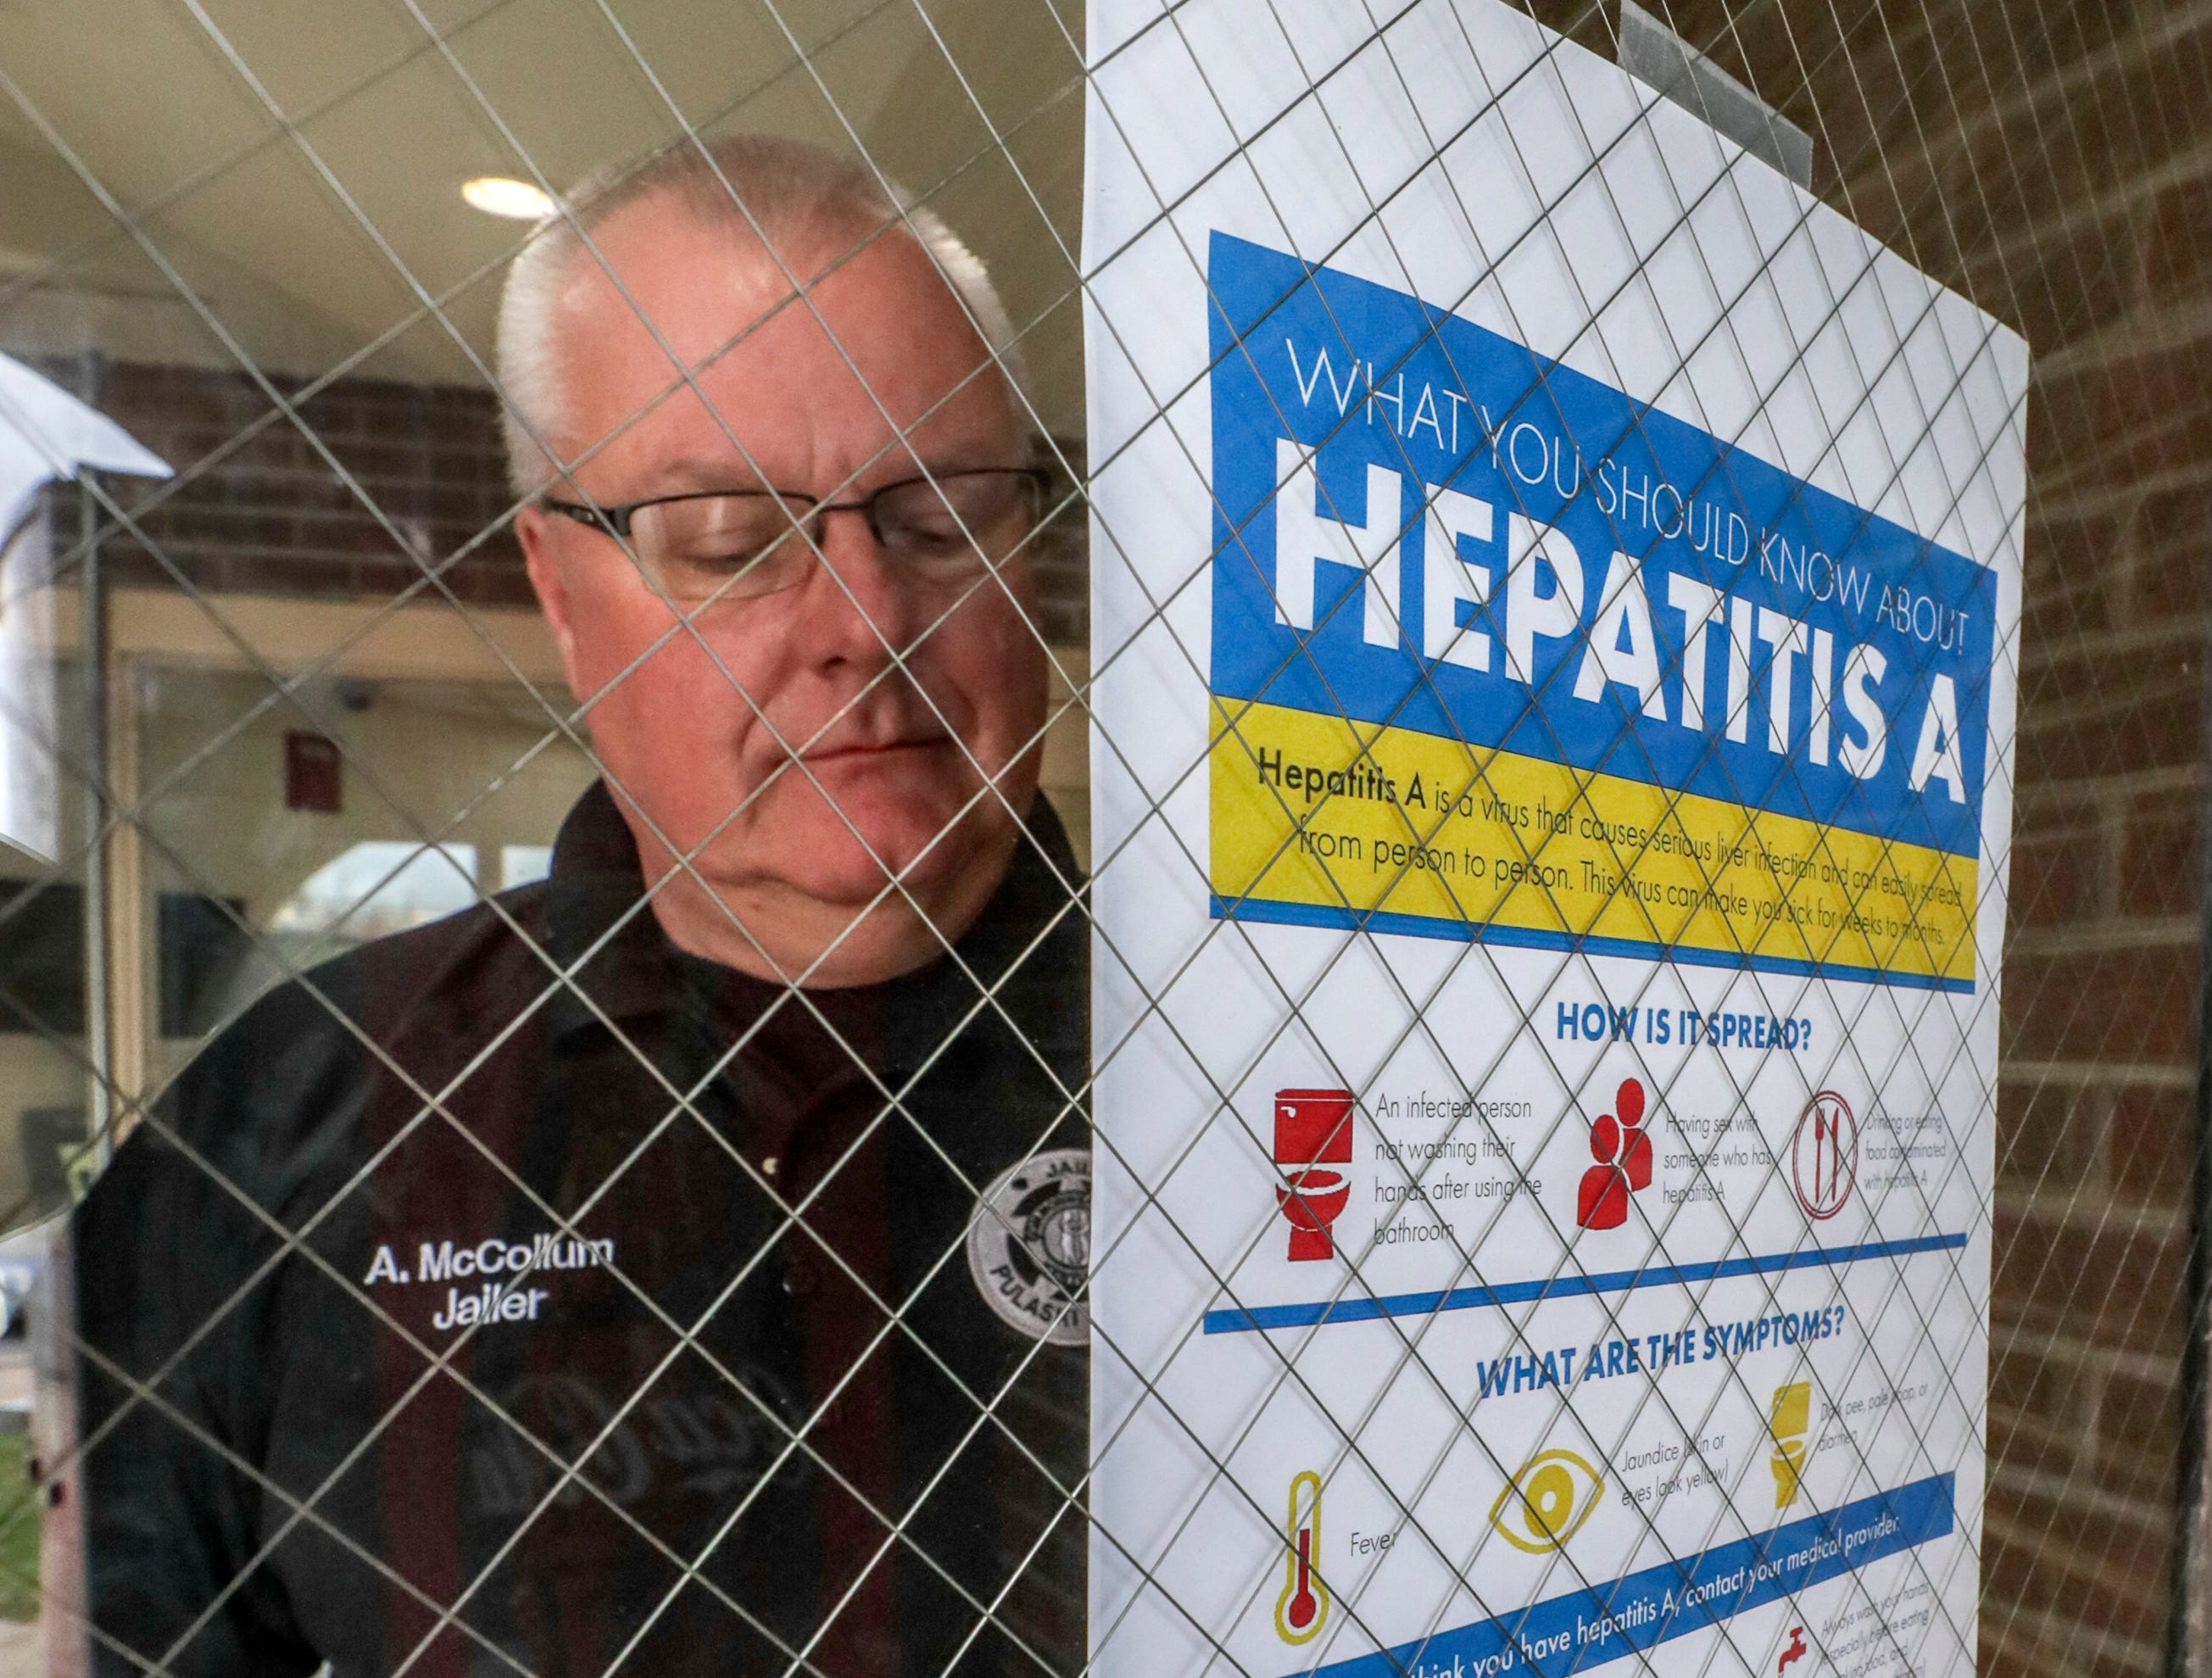 Pulaski County Detention Center Jailer Anthony McCullum looks for a place to hang a hepatitis A vaccination poster at the jail.  He has begun offering vaccinations for hepatitis in his jail after two inmates became ill.  About 90 percent of inmates opt to get vaccinated.